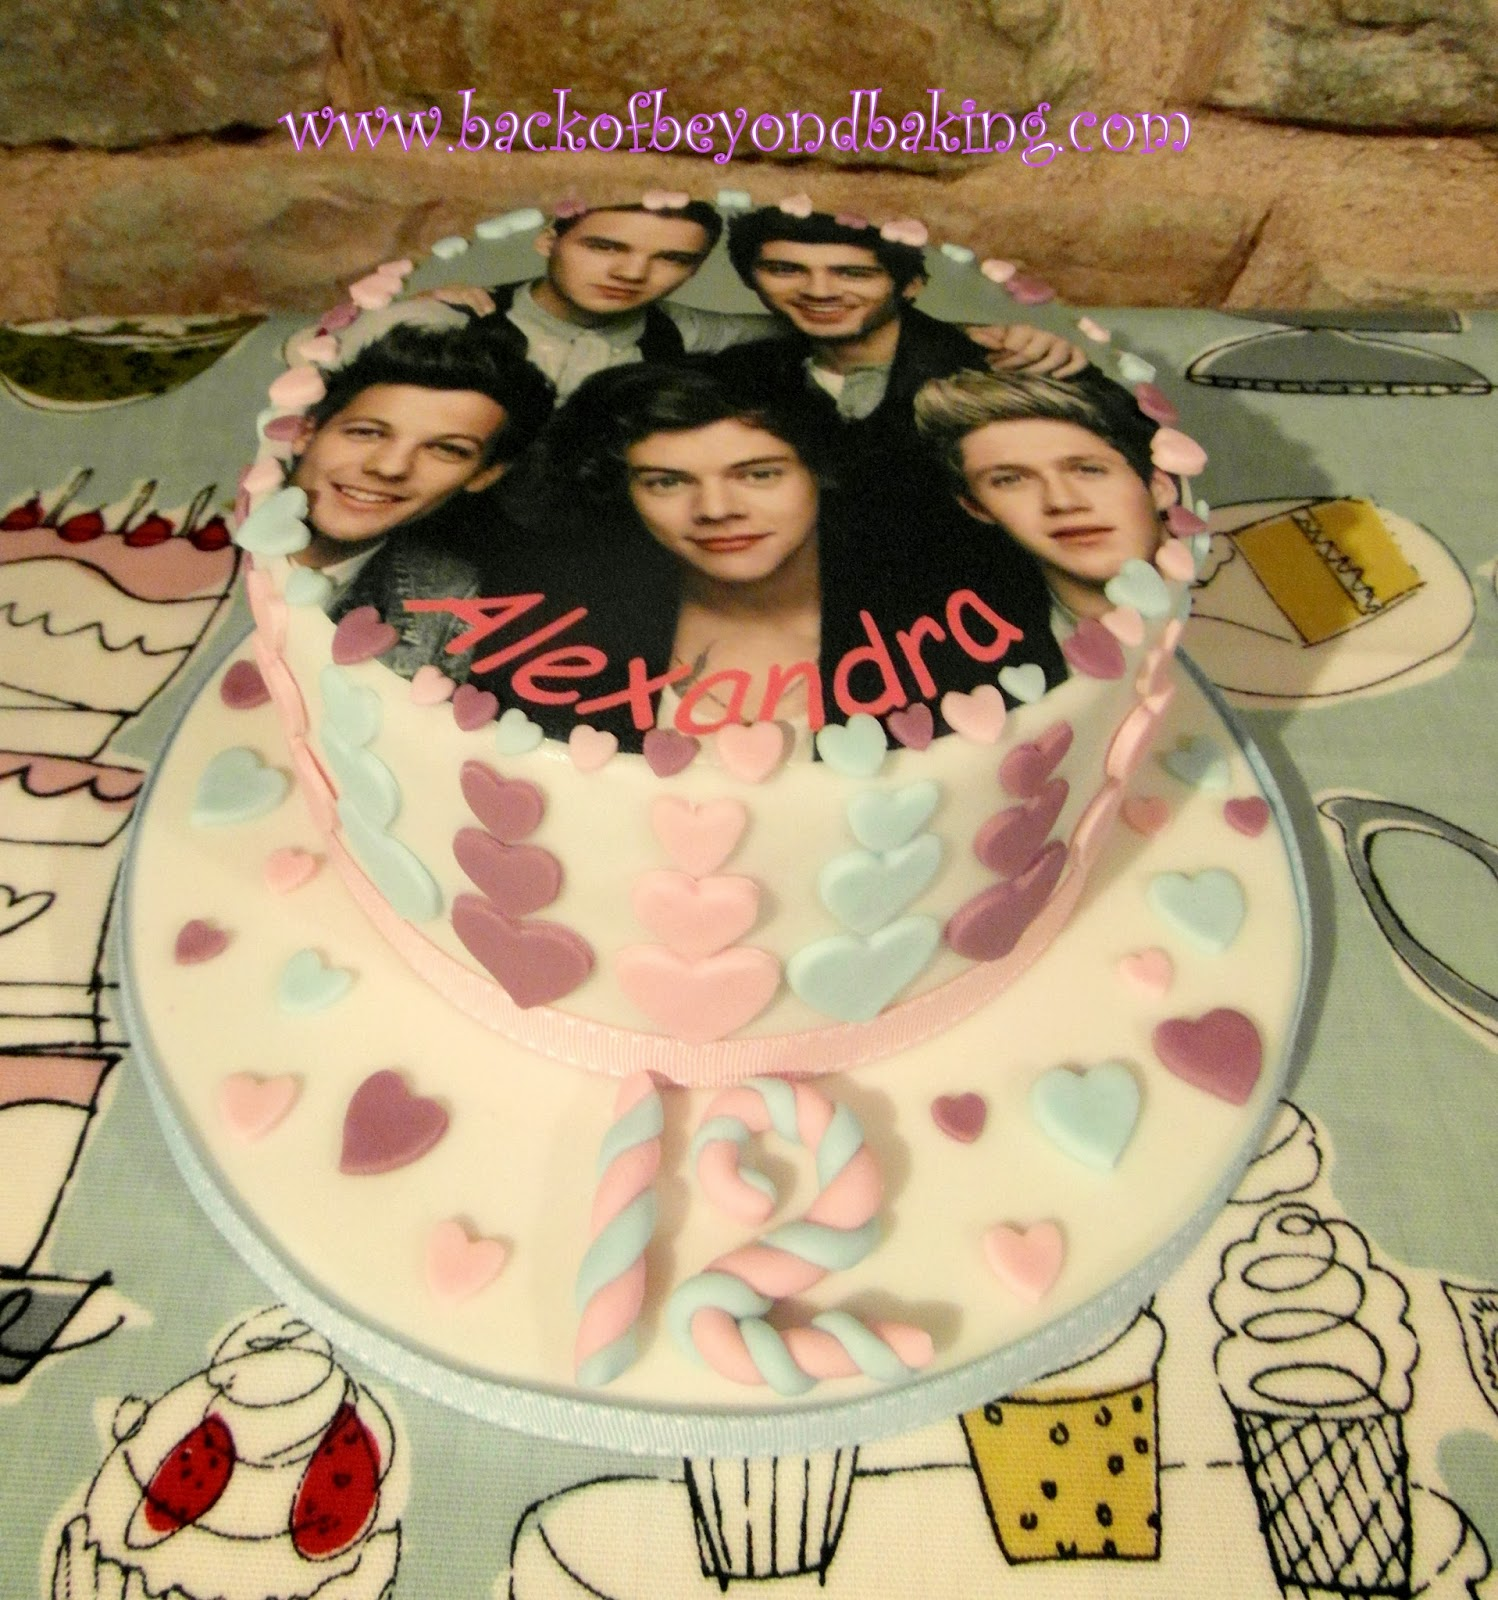 1D picture cake